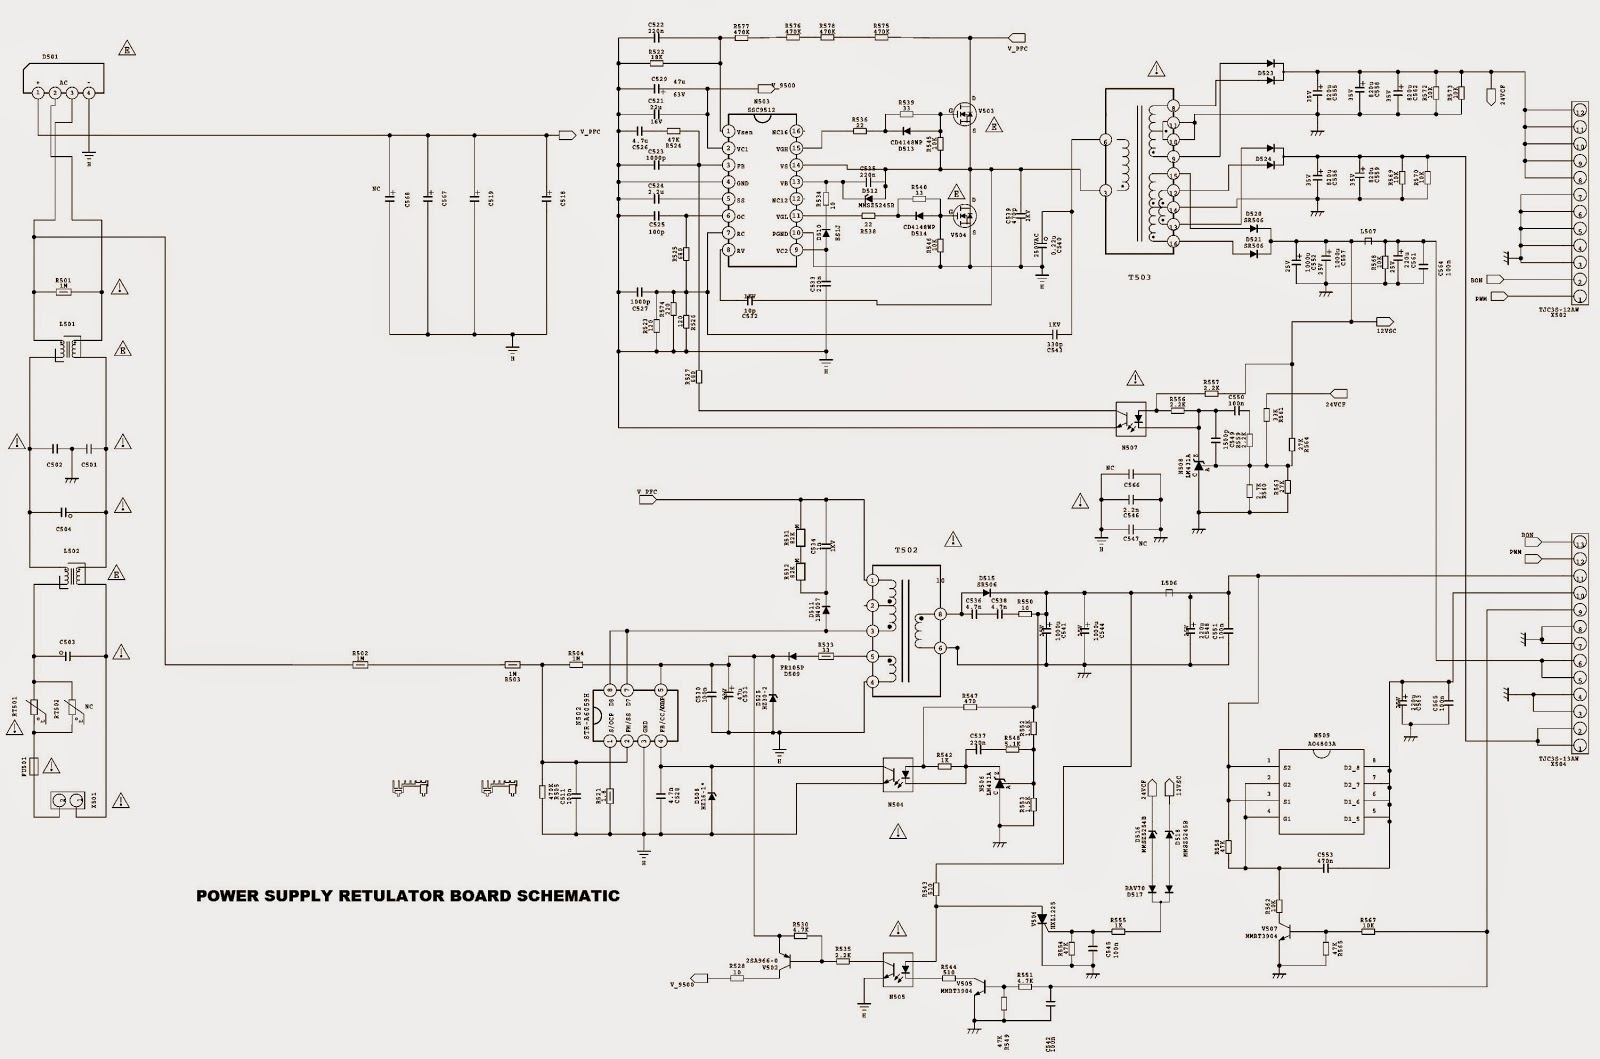 Sanyo Led 46xr123d How To Enter Factory Mode Adjustments Smps Schematic